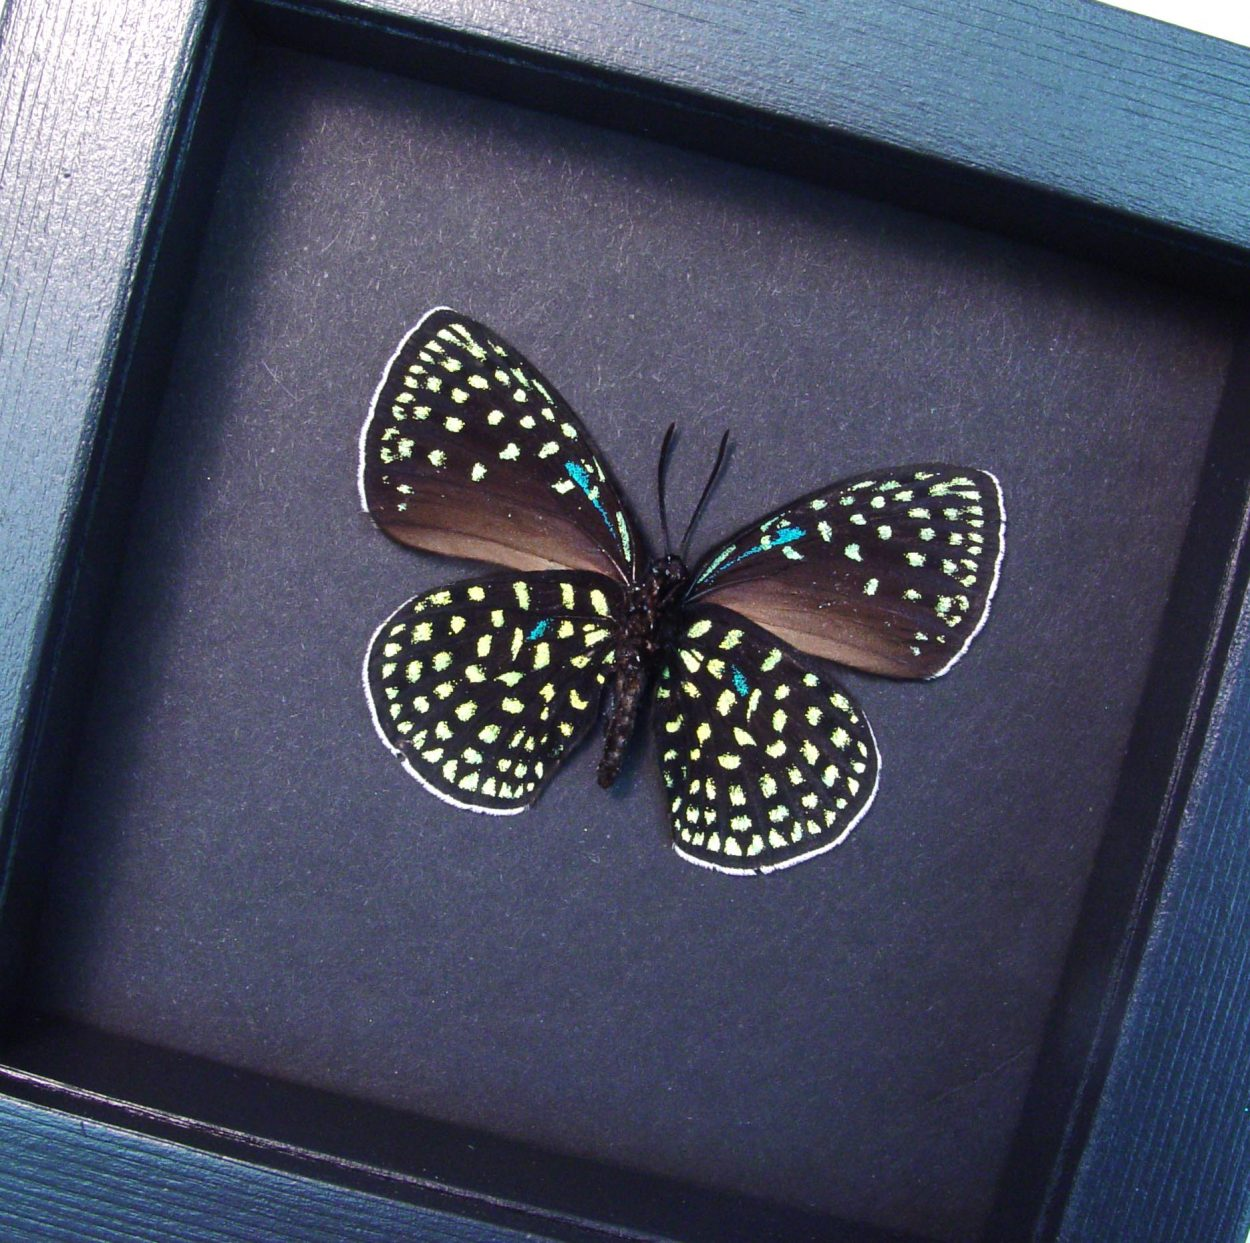 Eumaeus childrenae verso Blue Green Butterfly Moonlight Display